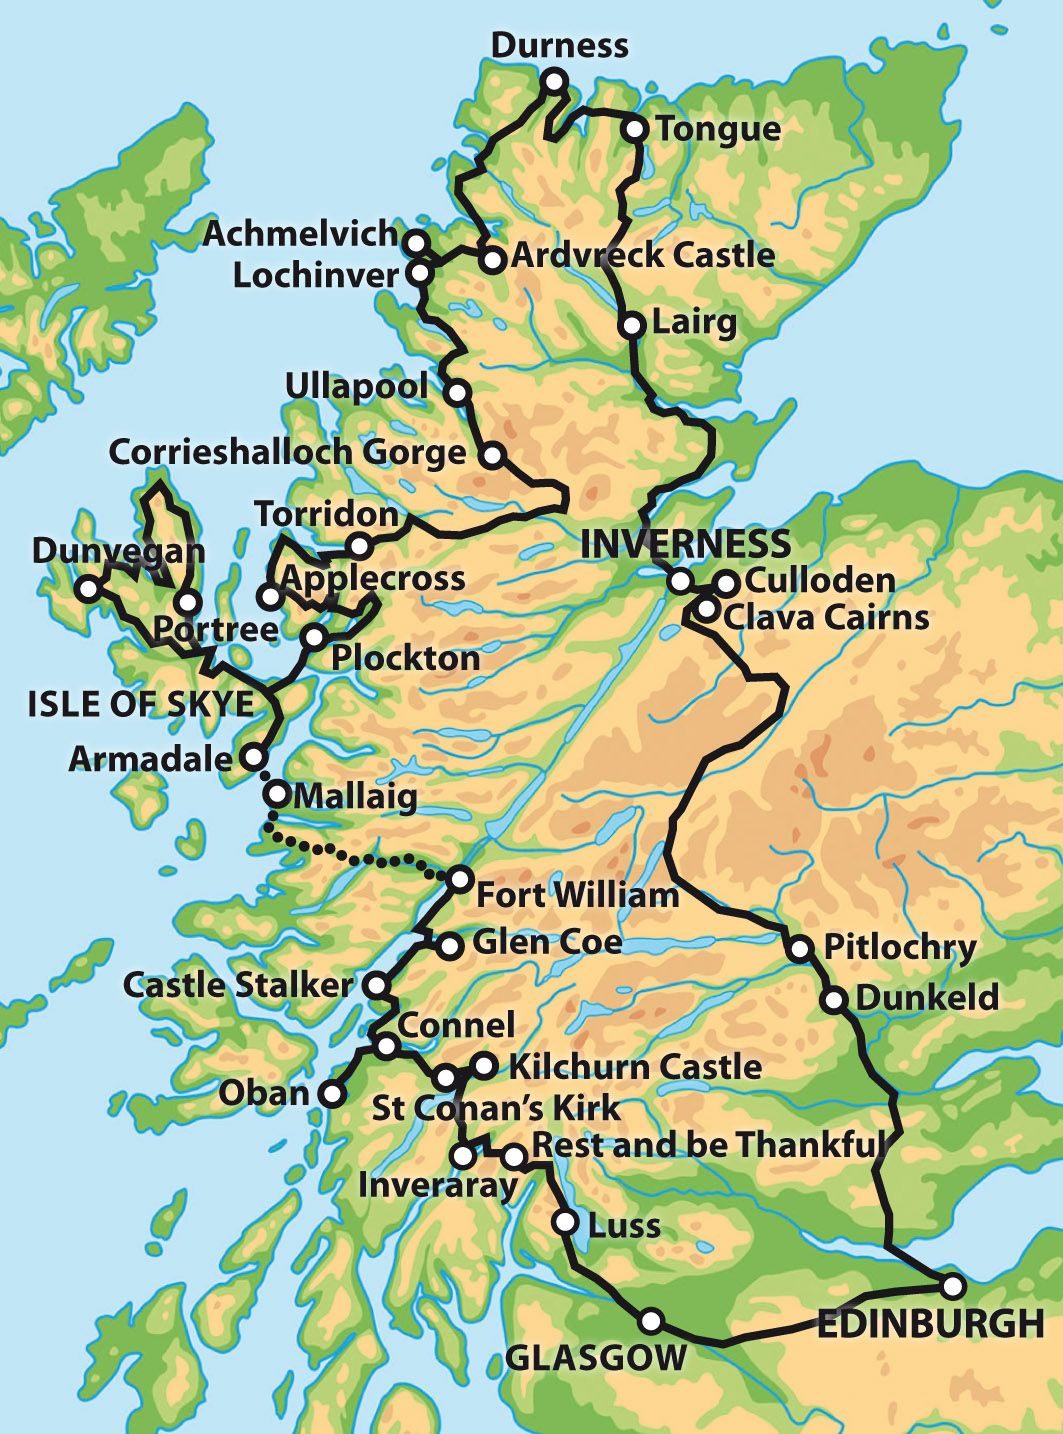 Private 7 Day Tour The Complete Tour Of Scotland Map Scotland Tours Scotland Road Trip Scotland Vacation